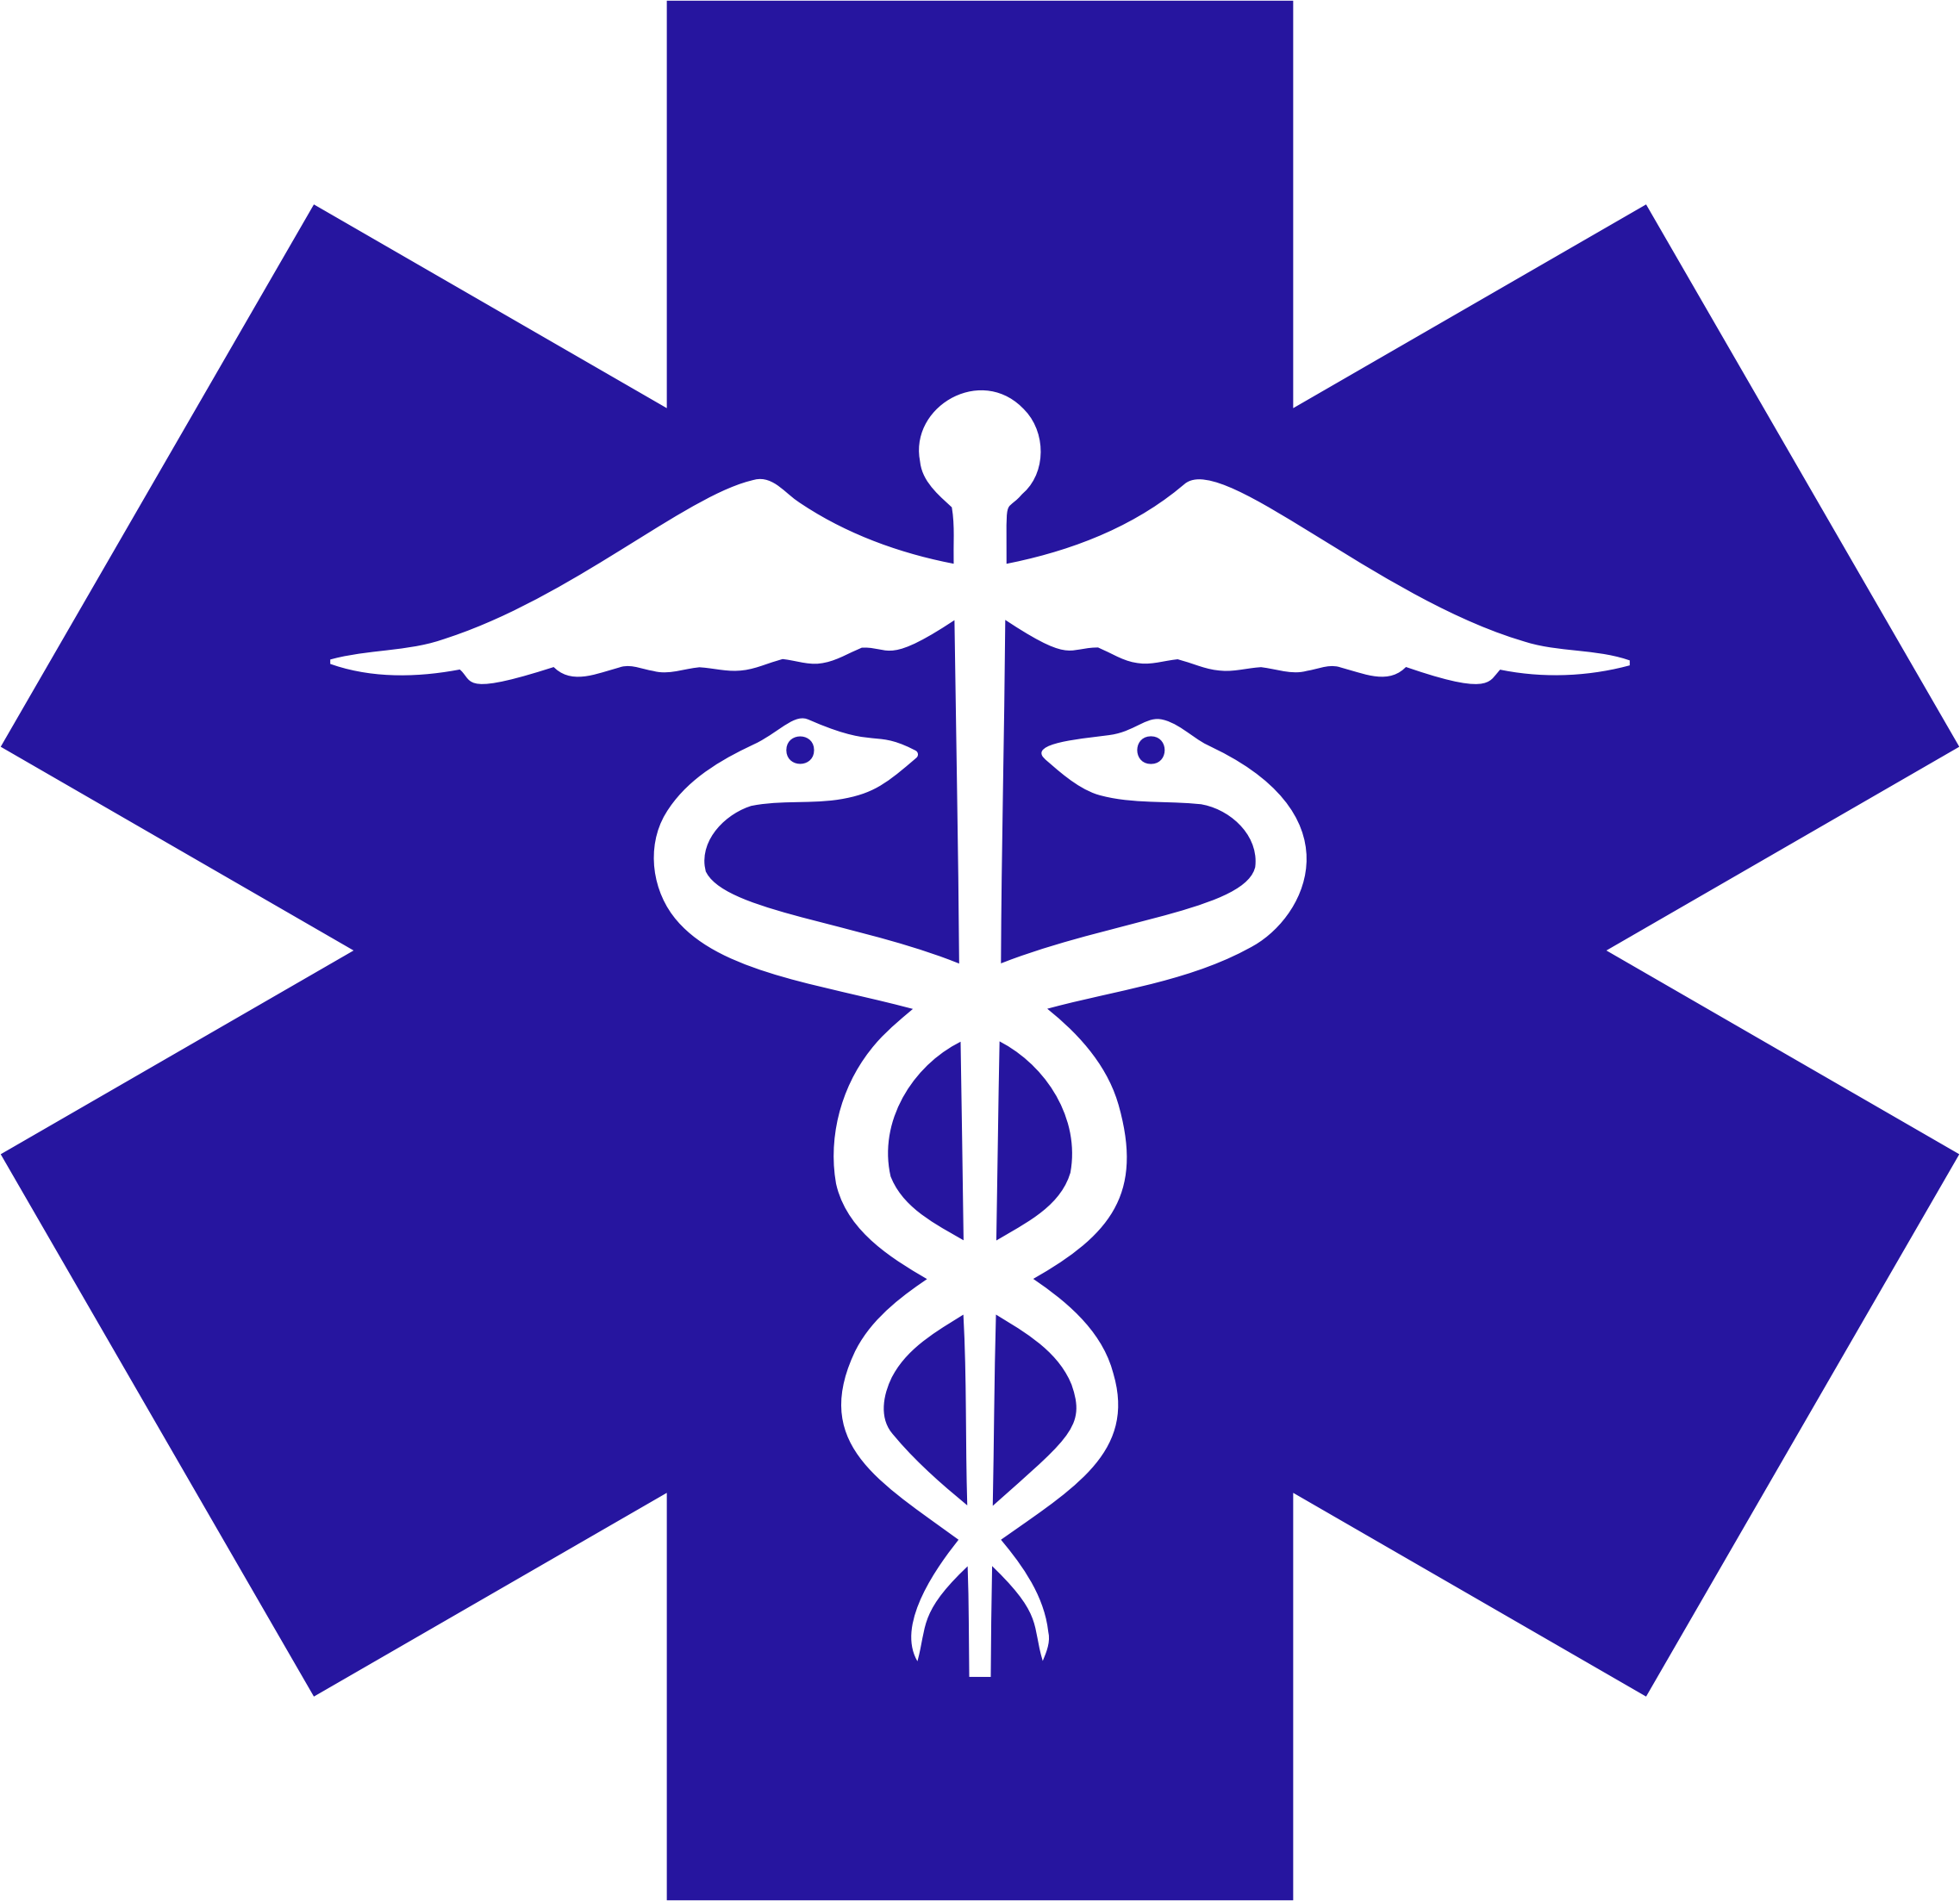 Caduceus On Blue Star Of Life by GDJ